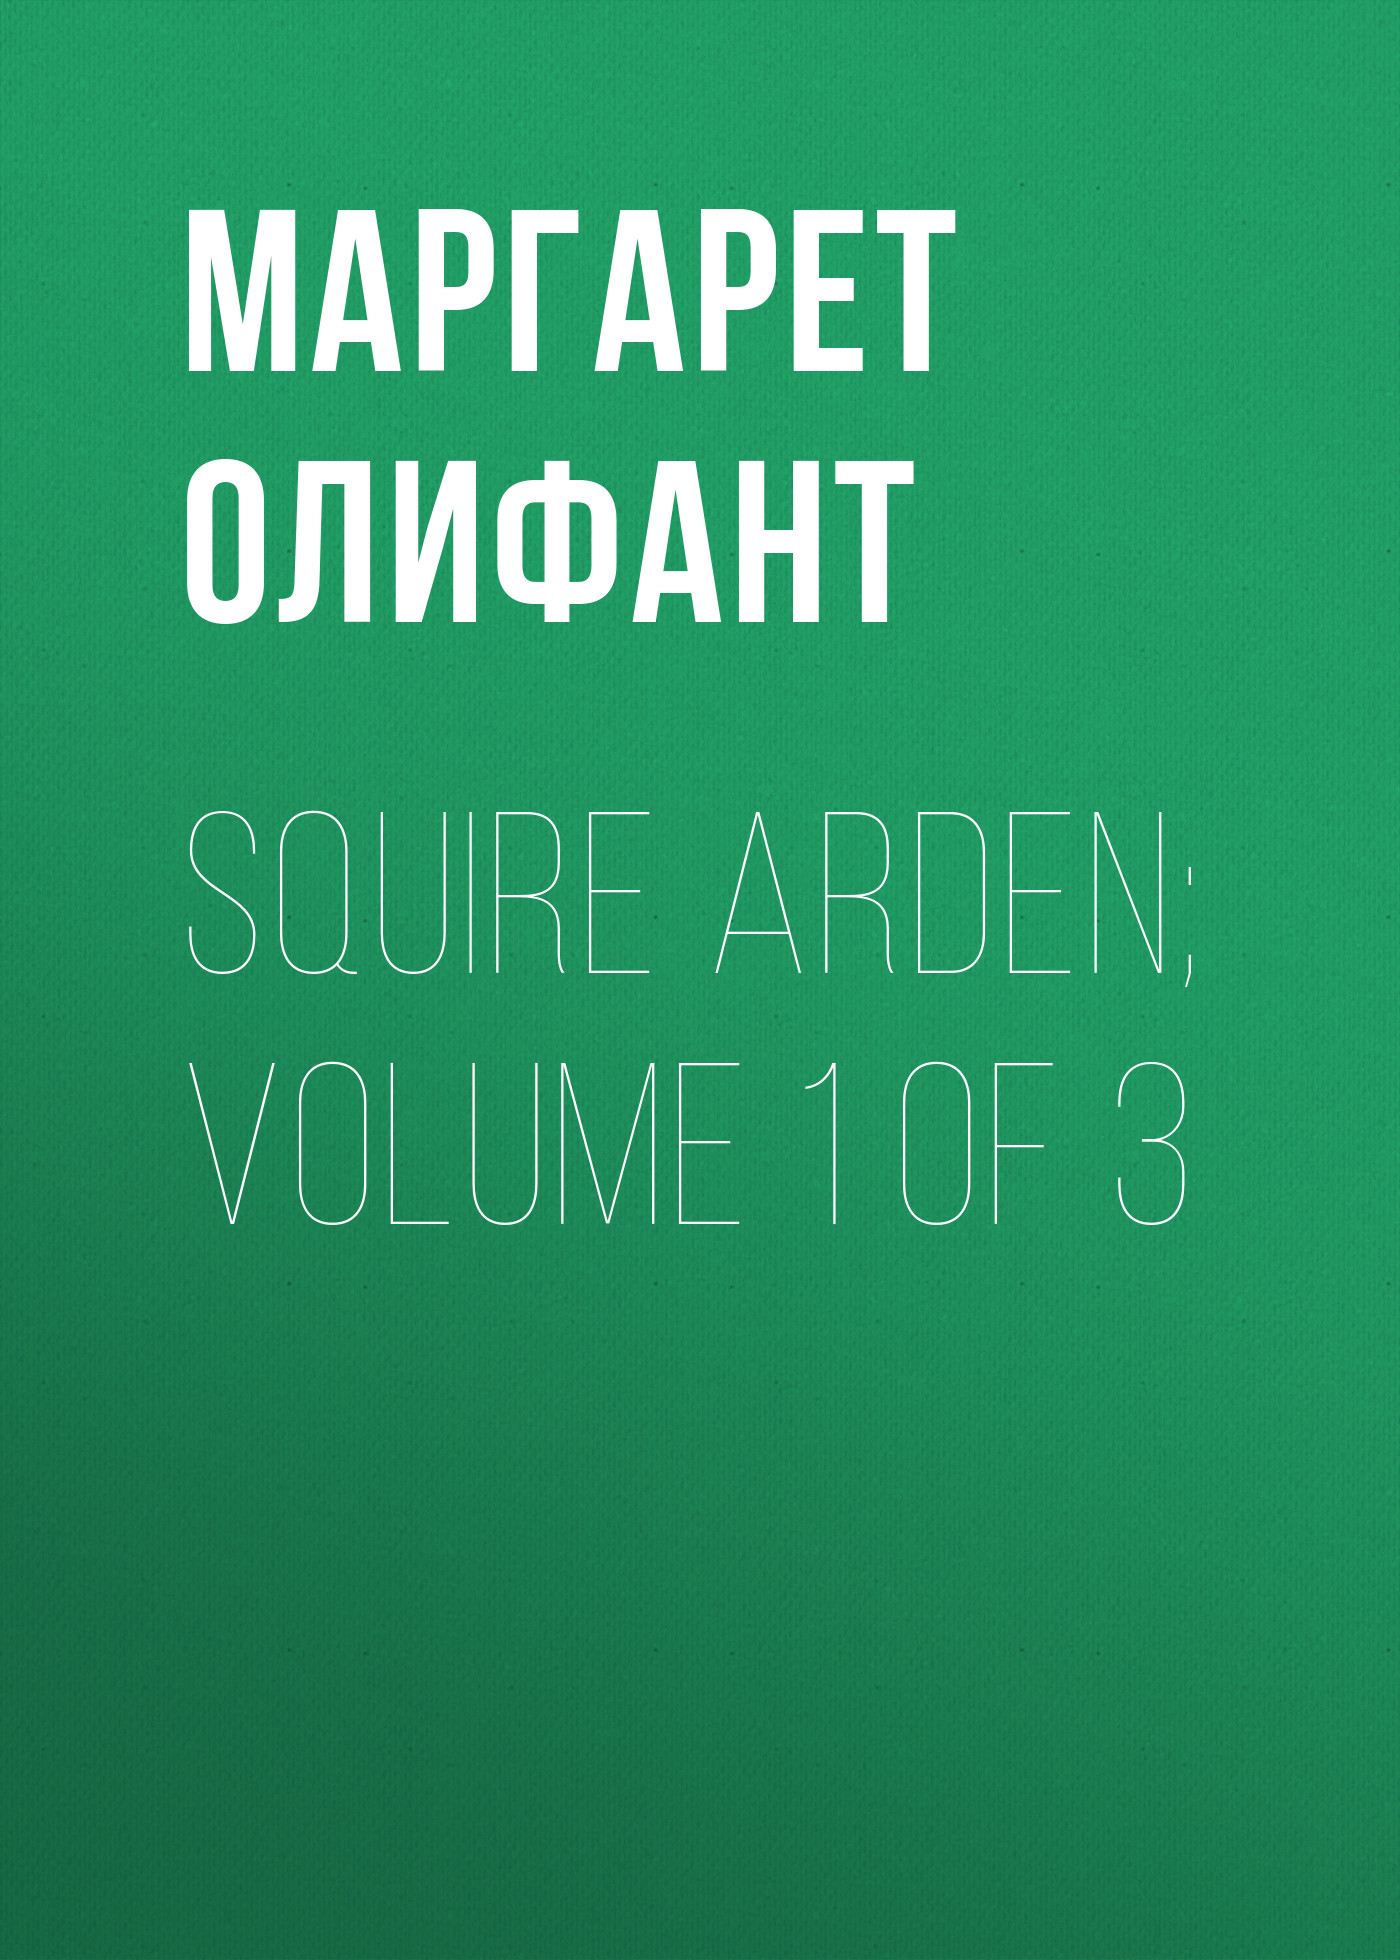 Маргарет Олифант Squire Arden; volume 1 of 3 маргарет олифант the house on the moor volume 3